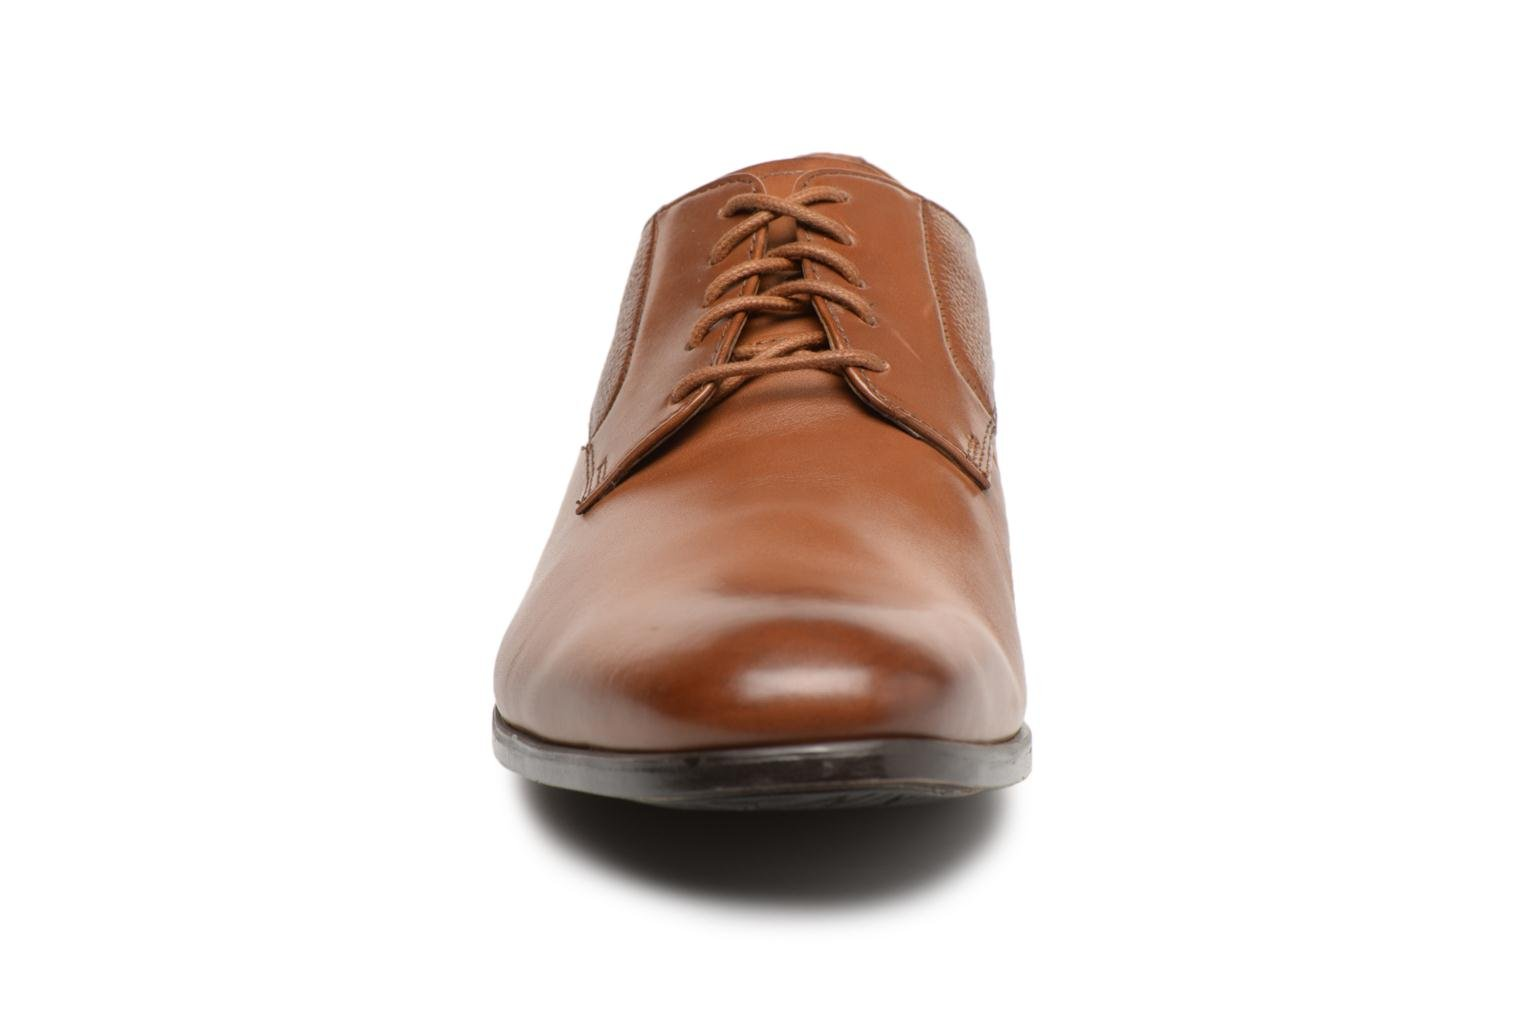 Gilmore Lace Tan Leather